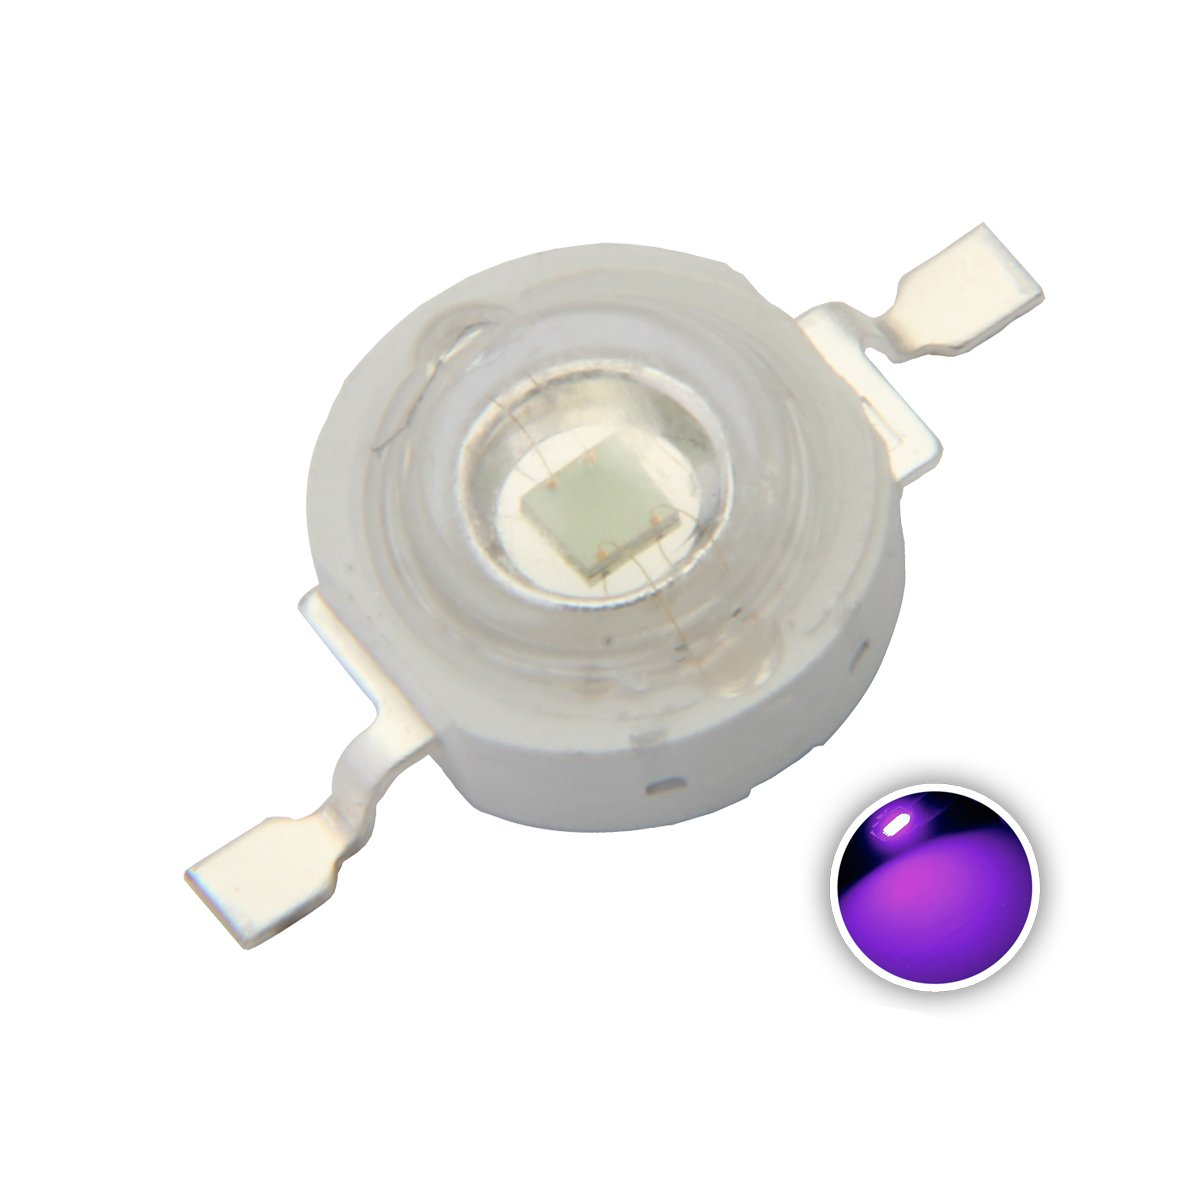 Chanzon 10 pcs High Power Led Chip 3W Purple Ultraviolet (UV 370nm/400mA-500mA/DC 3V-3.2V/3 Watt) SMD COB Light Emitter Components Diode 3 W Ultra Violet Bulb Lamp Beads DIY Lighting